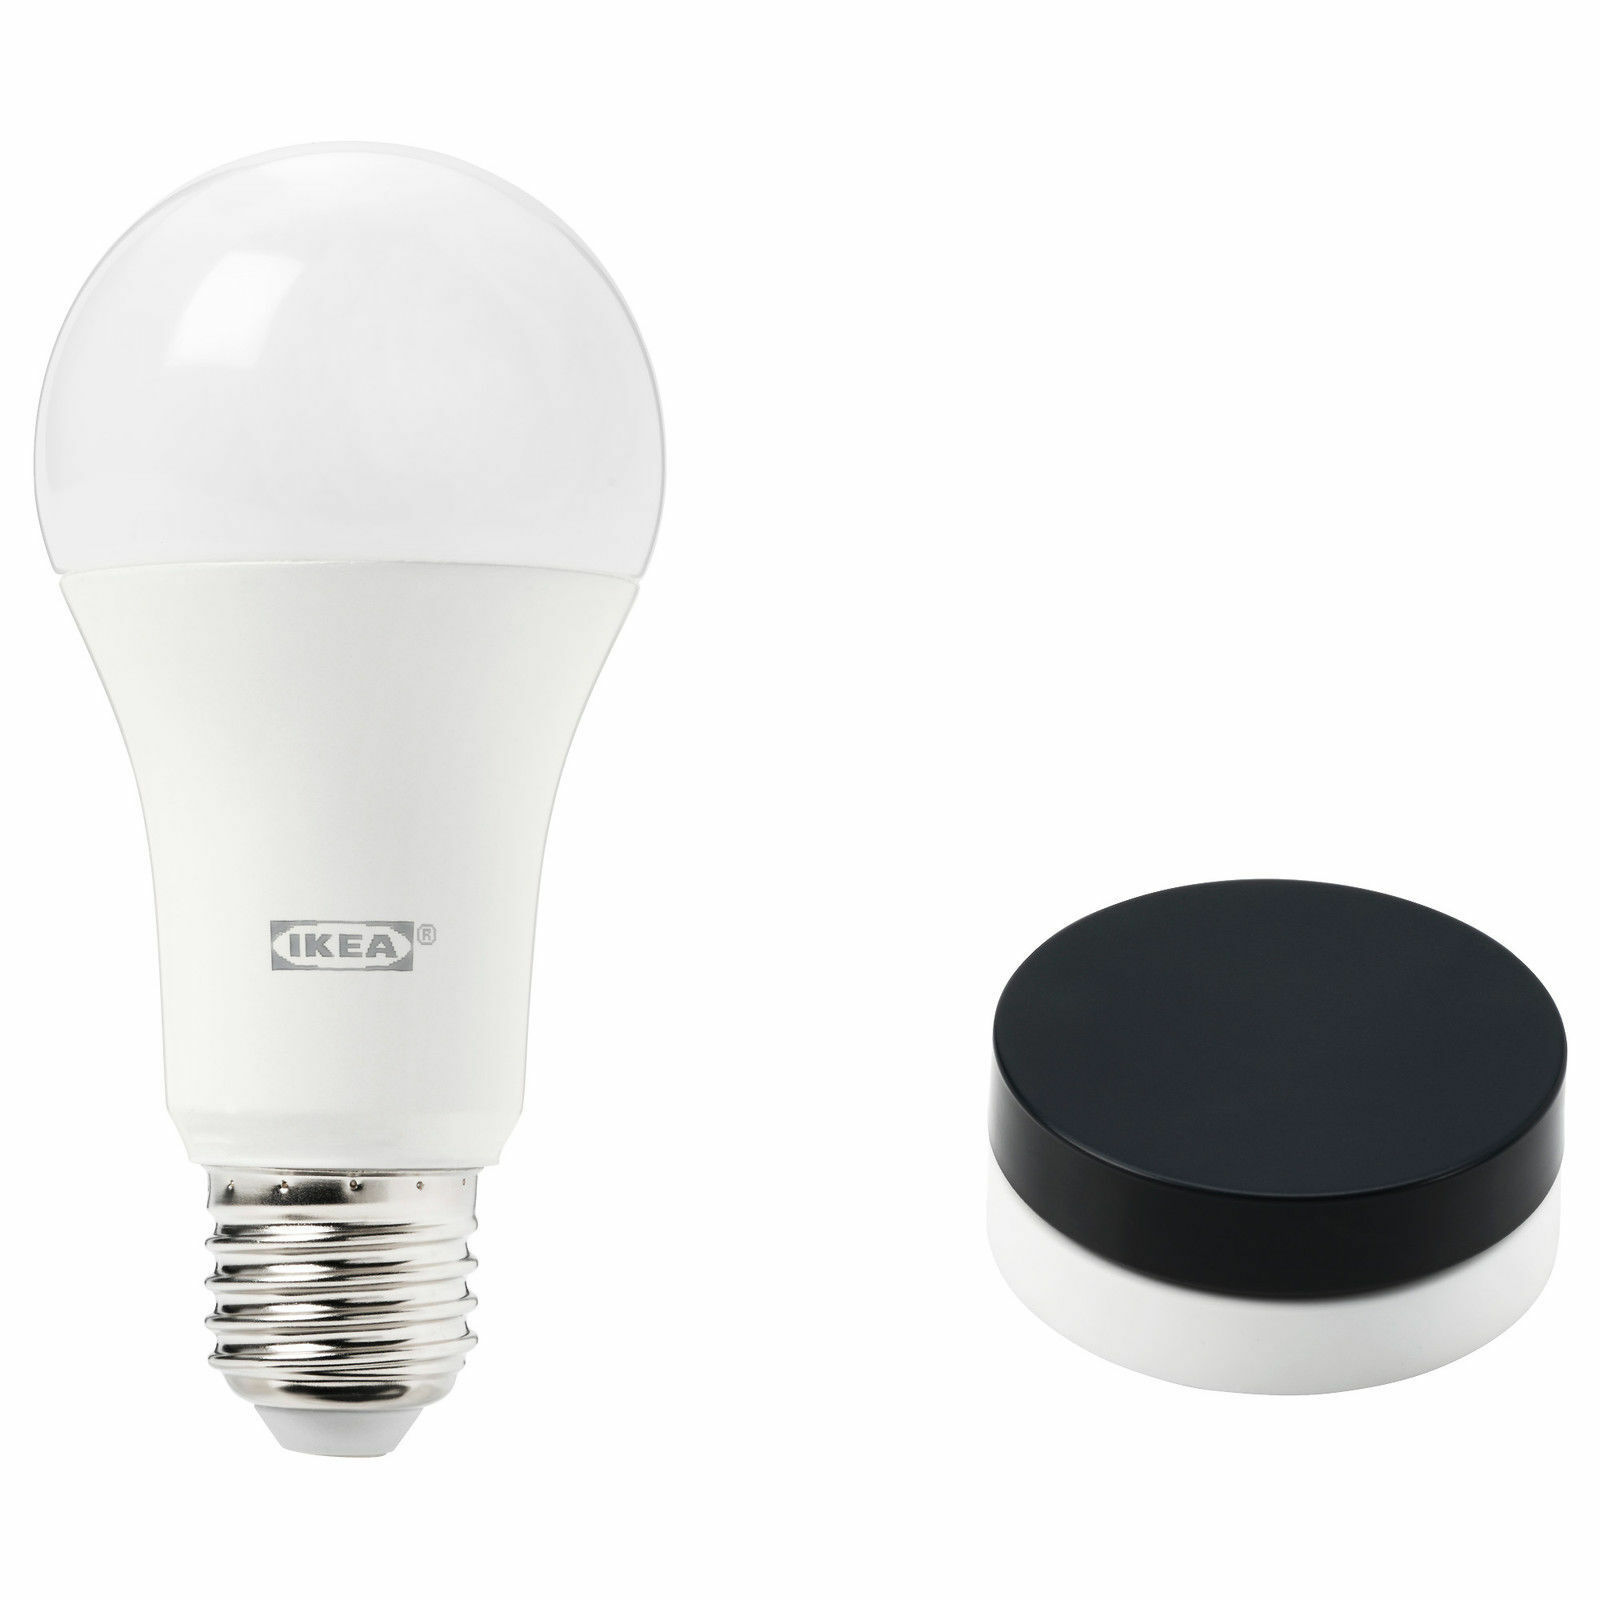 Ikea Tradfri Details About Ikea TrÅdfri Smart Led Wireless Remote Control Lighting Bulbs Kits Limited Ed